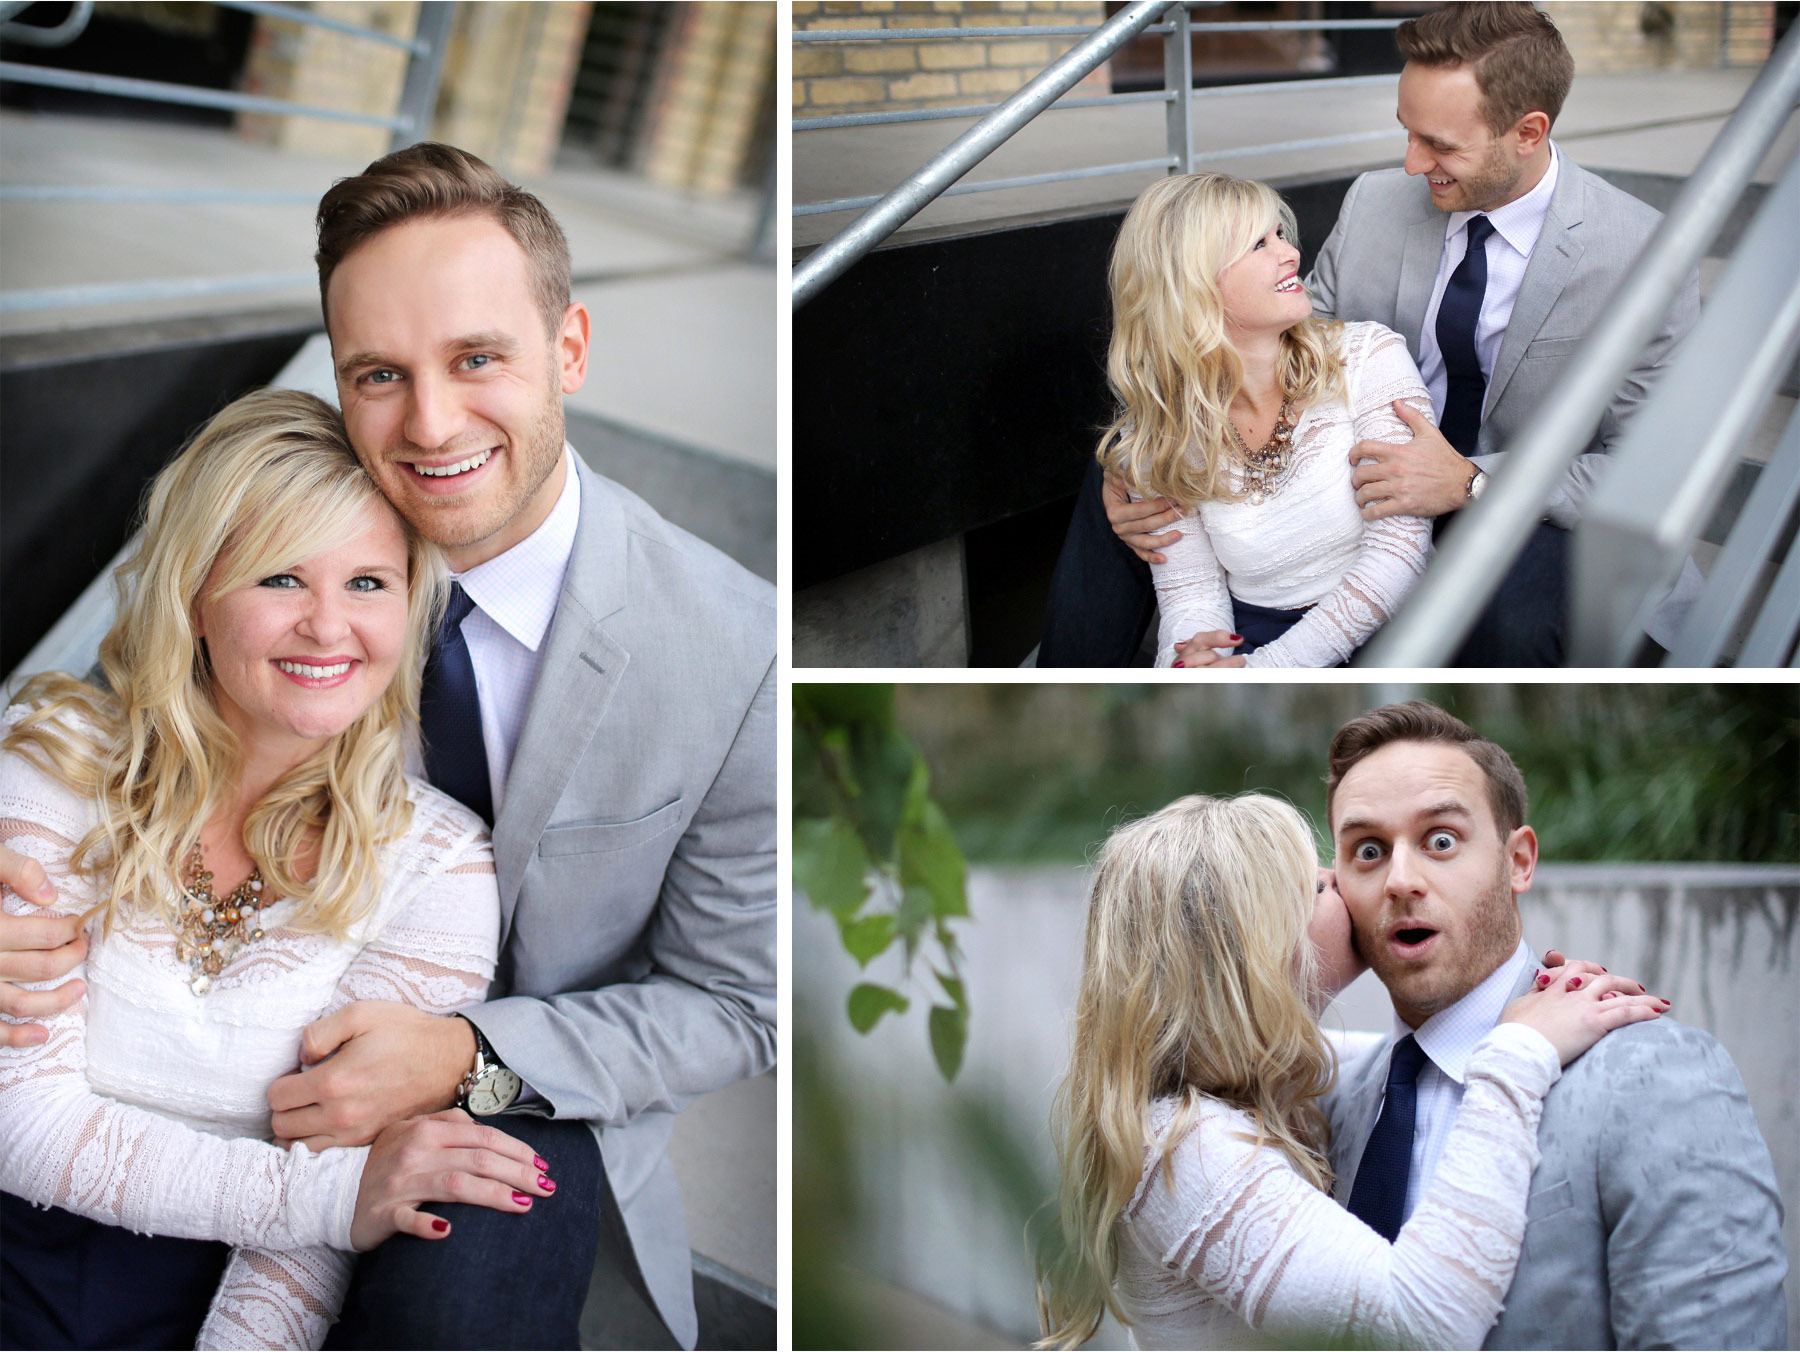 03-Minneapolis-Minnesota-Wedding-Photographer-by-Andrew-Vick-Photography-Fall-Autumn-Engagement-Bride-Groom-Downtown-Kiss-Mallory-and-Kyle.jpg